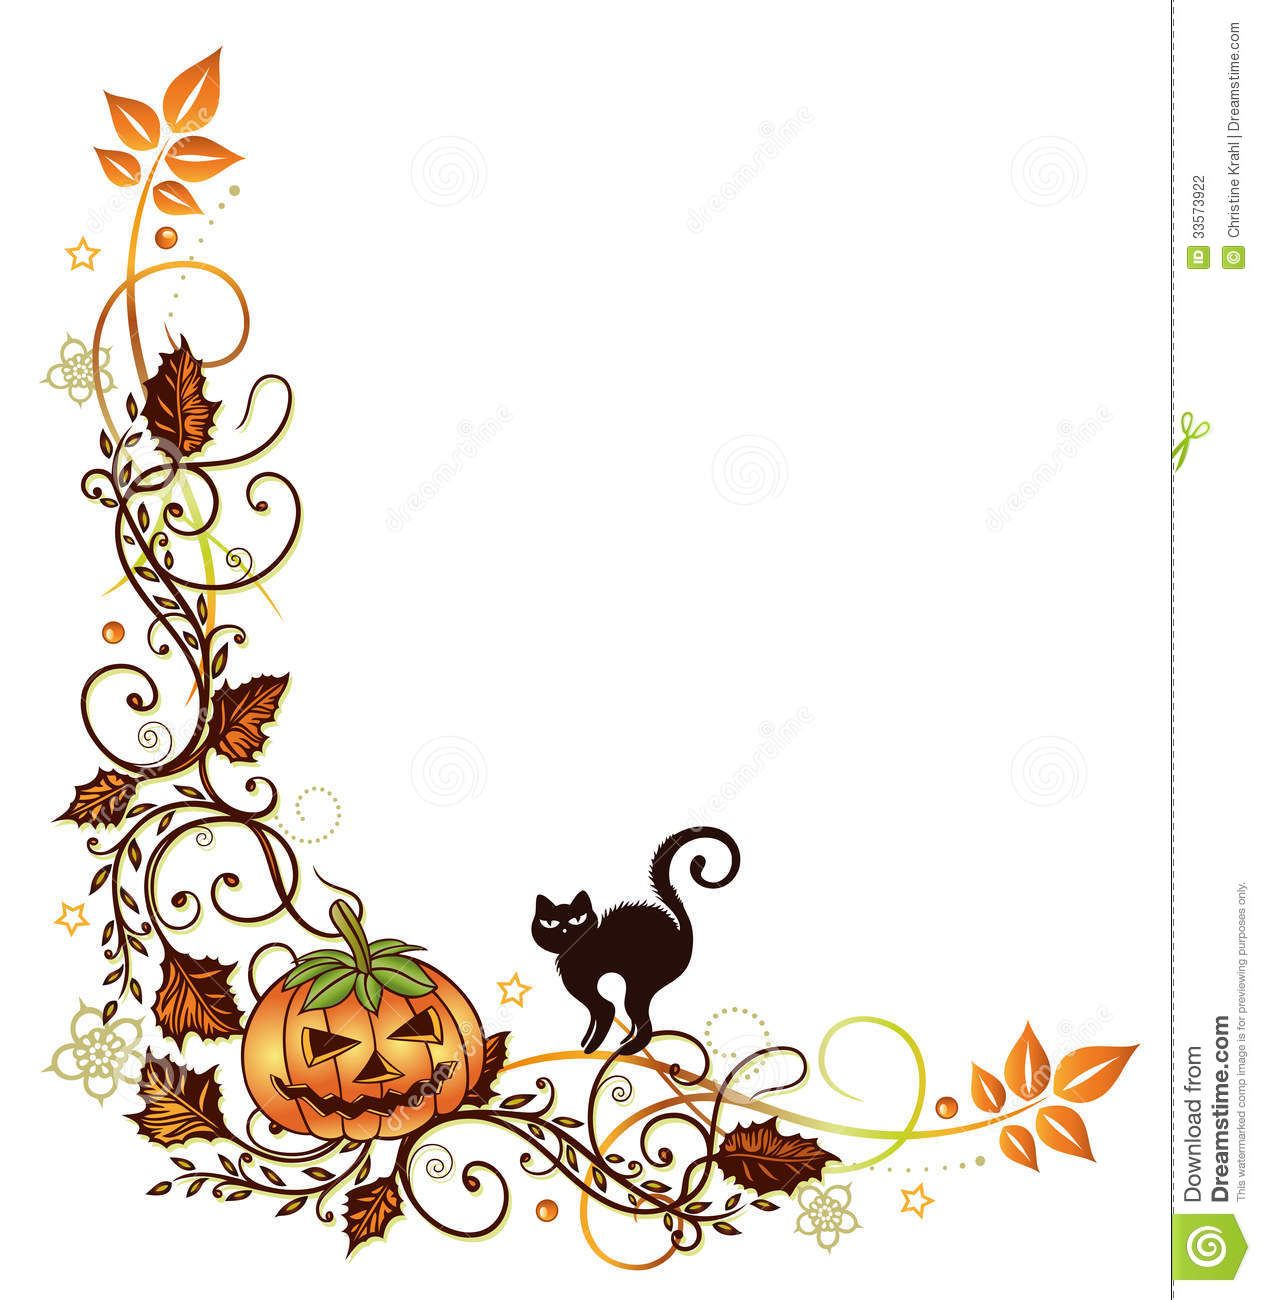 small resolution of halloween border clipart free large images